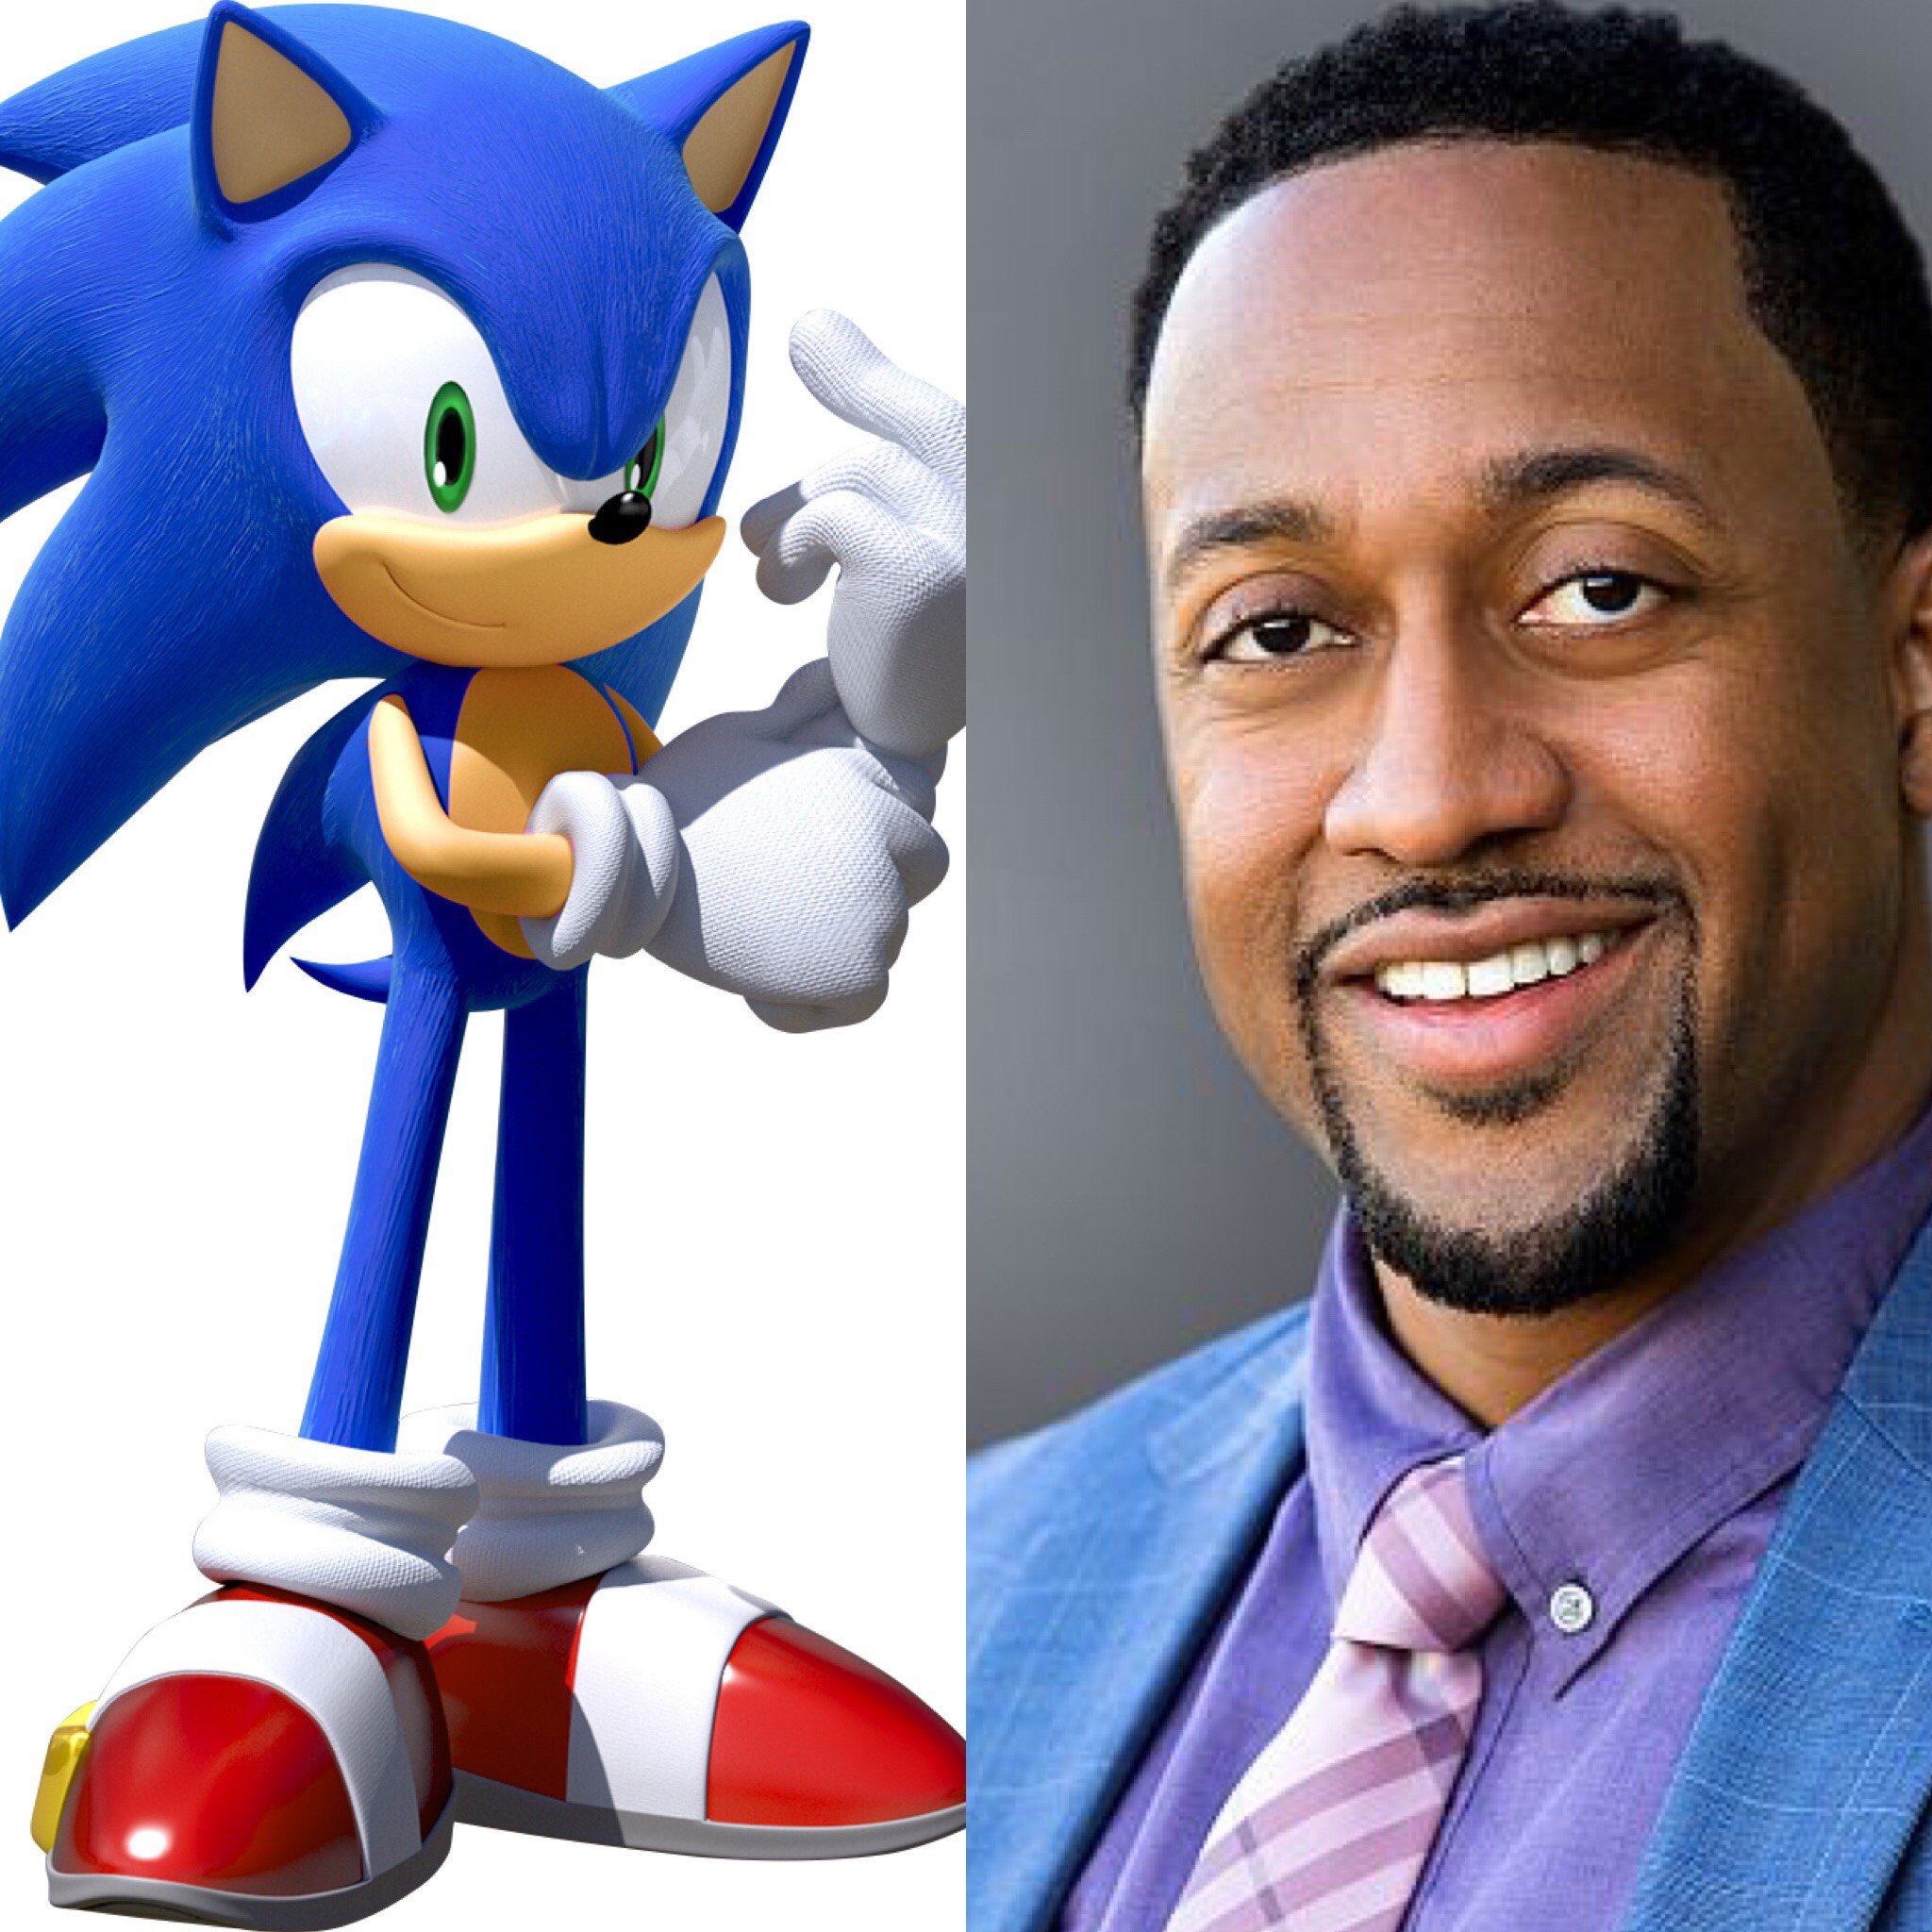 Jaleel White the voice actor next to Sonic the Hedgehog